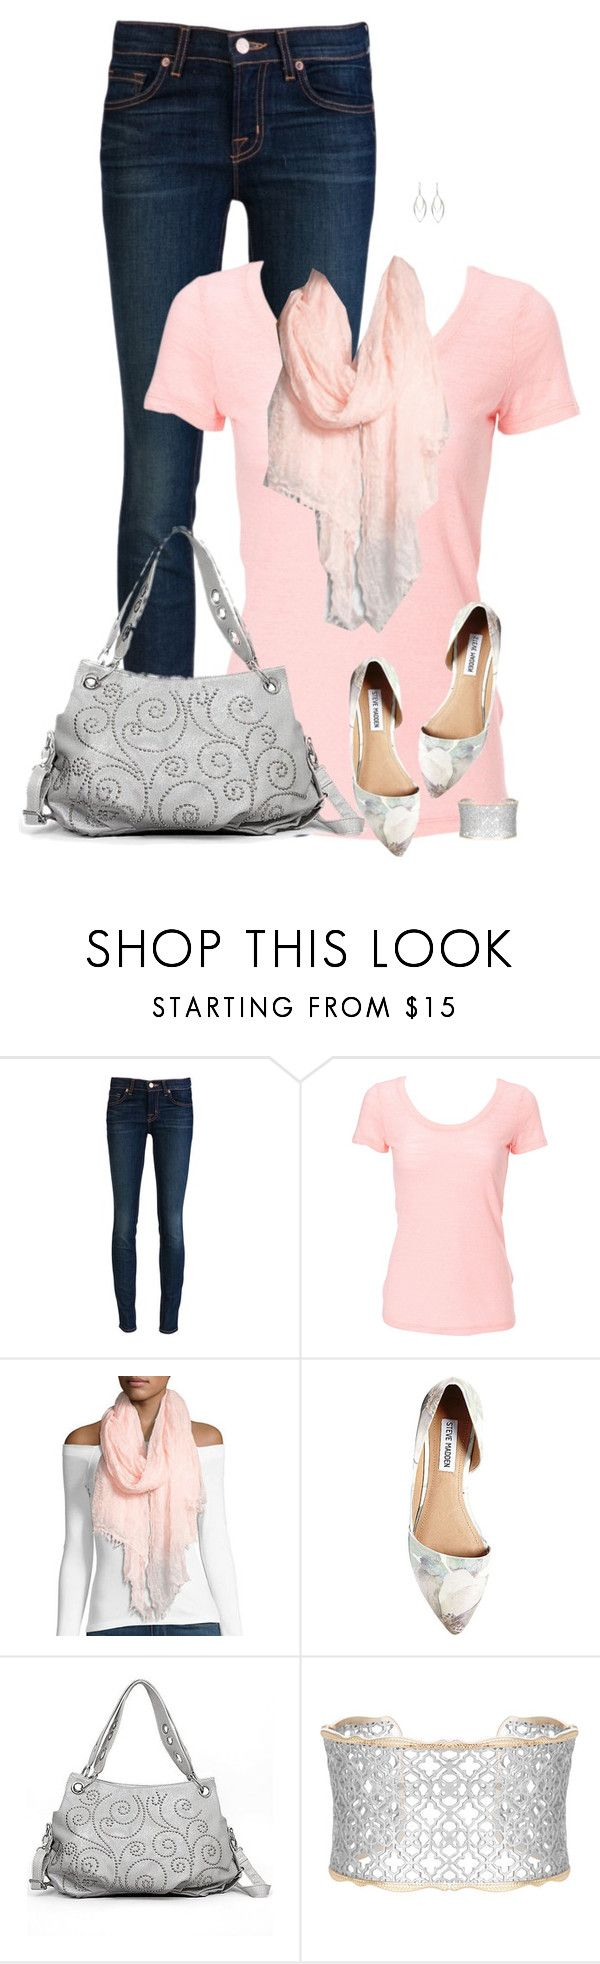 """""""Pink T-Shirt and Jeans"""" by daiscat ❤ liked on Polyvore featuring J Brand, Simplex Apparel, Neiman Marcus, Steve Madden, Sophisticated Style and Kendra Scott"""